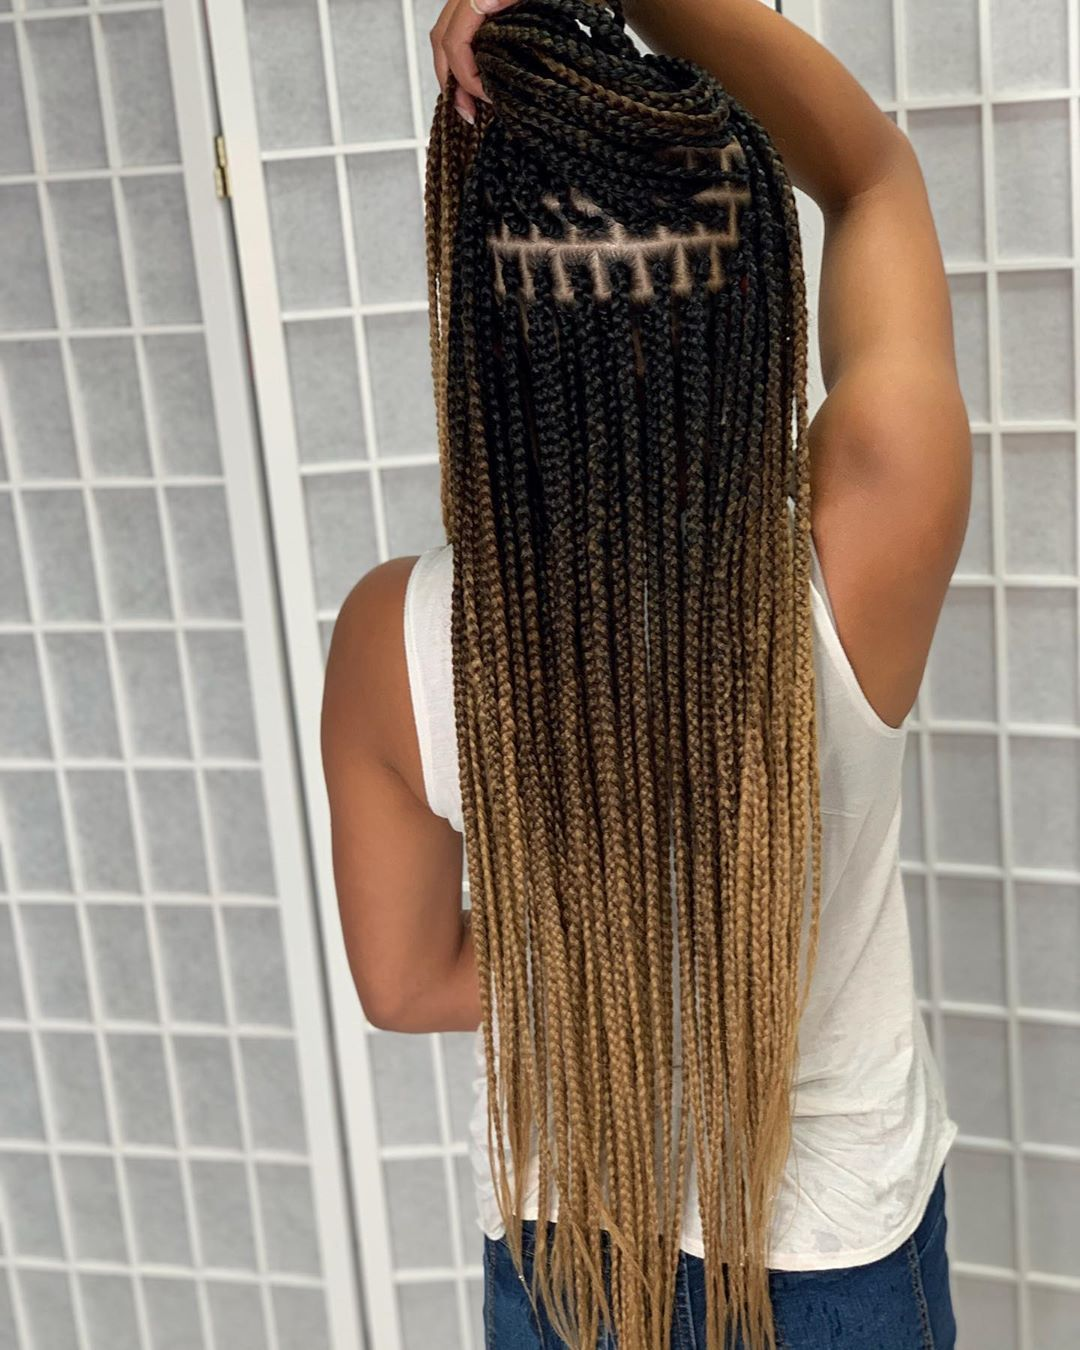 Excellent Photographs Box braids penteado Strategies Of course, at one time not too long ago, each time a qualified African-American female would not hav #Box #braids #Excellent #penteado #Photographs #Strategies